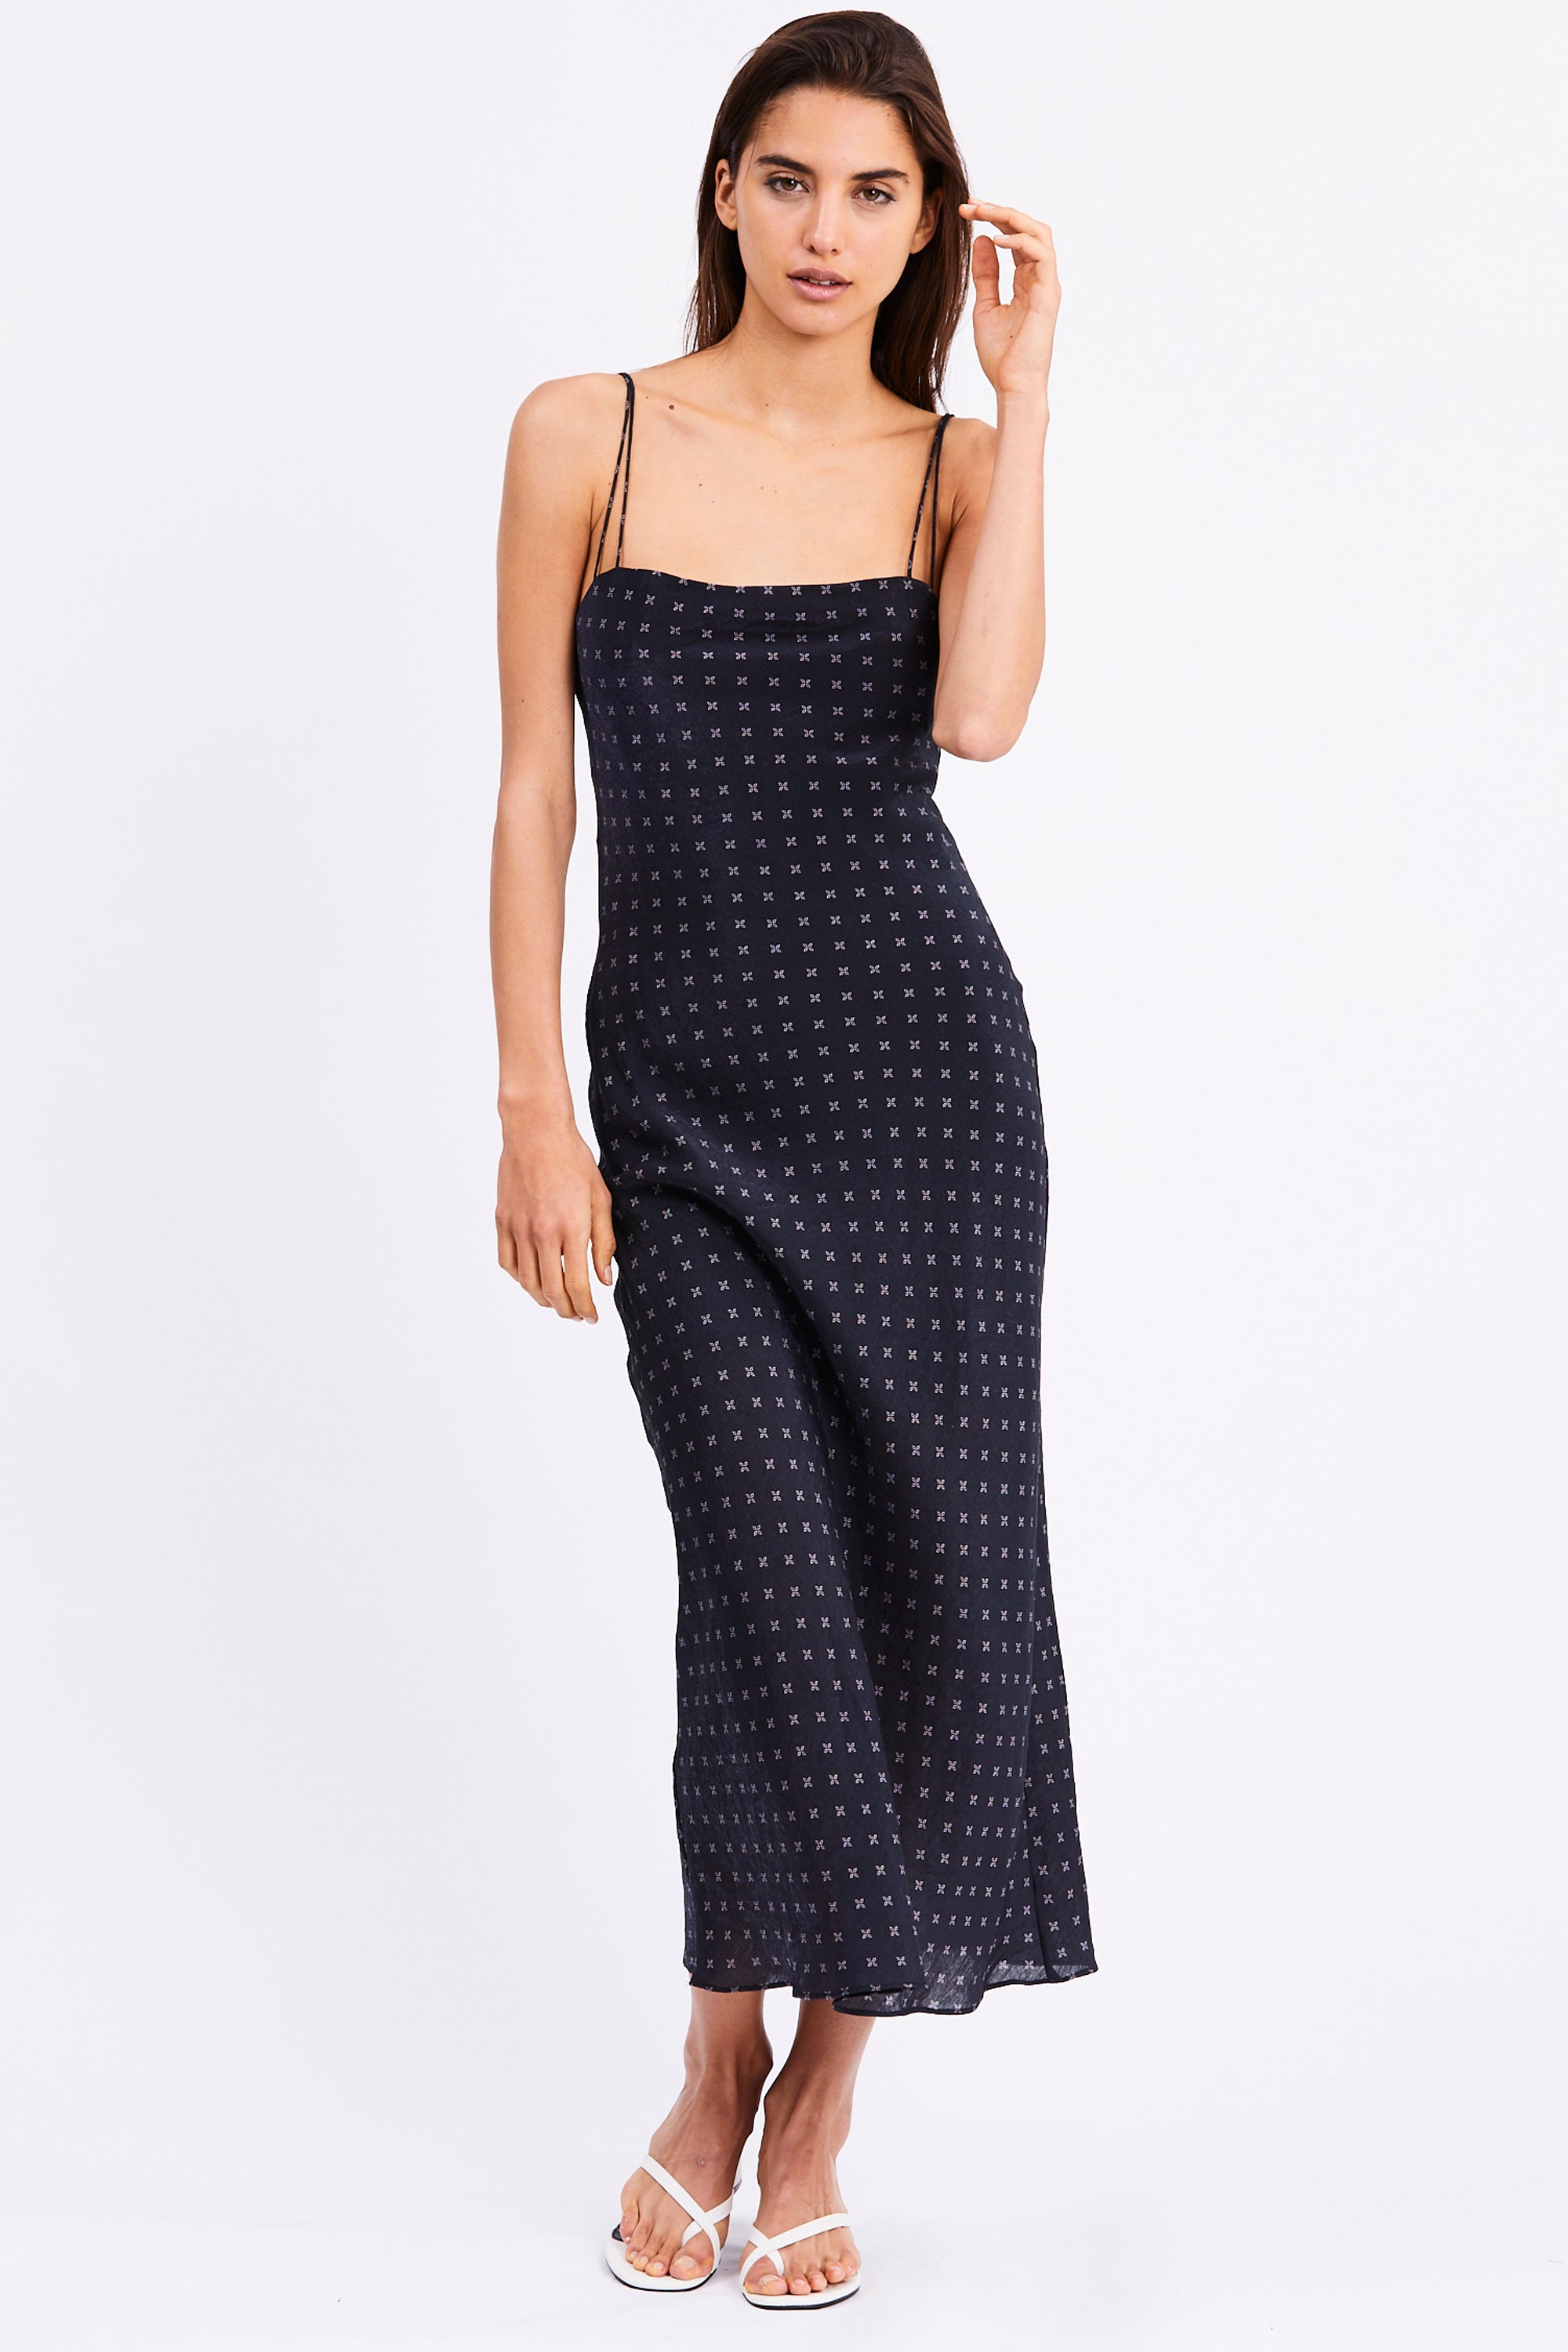 SEAKER BIAS MIDI DRESS | NIGHT STAR